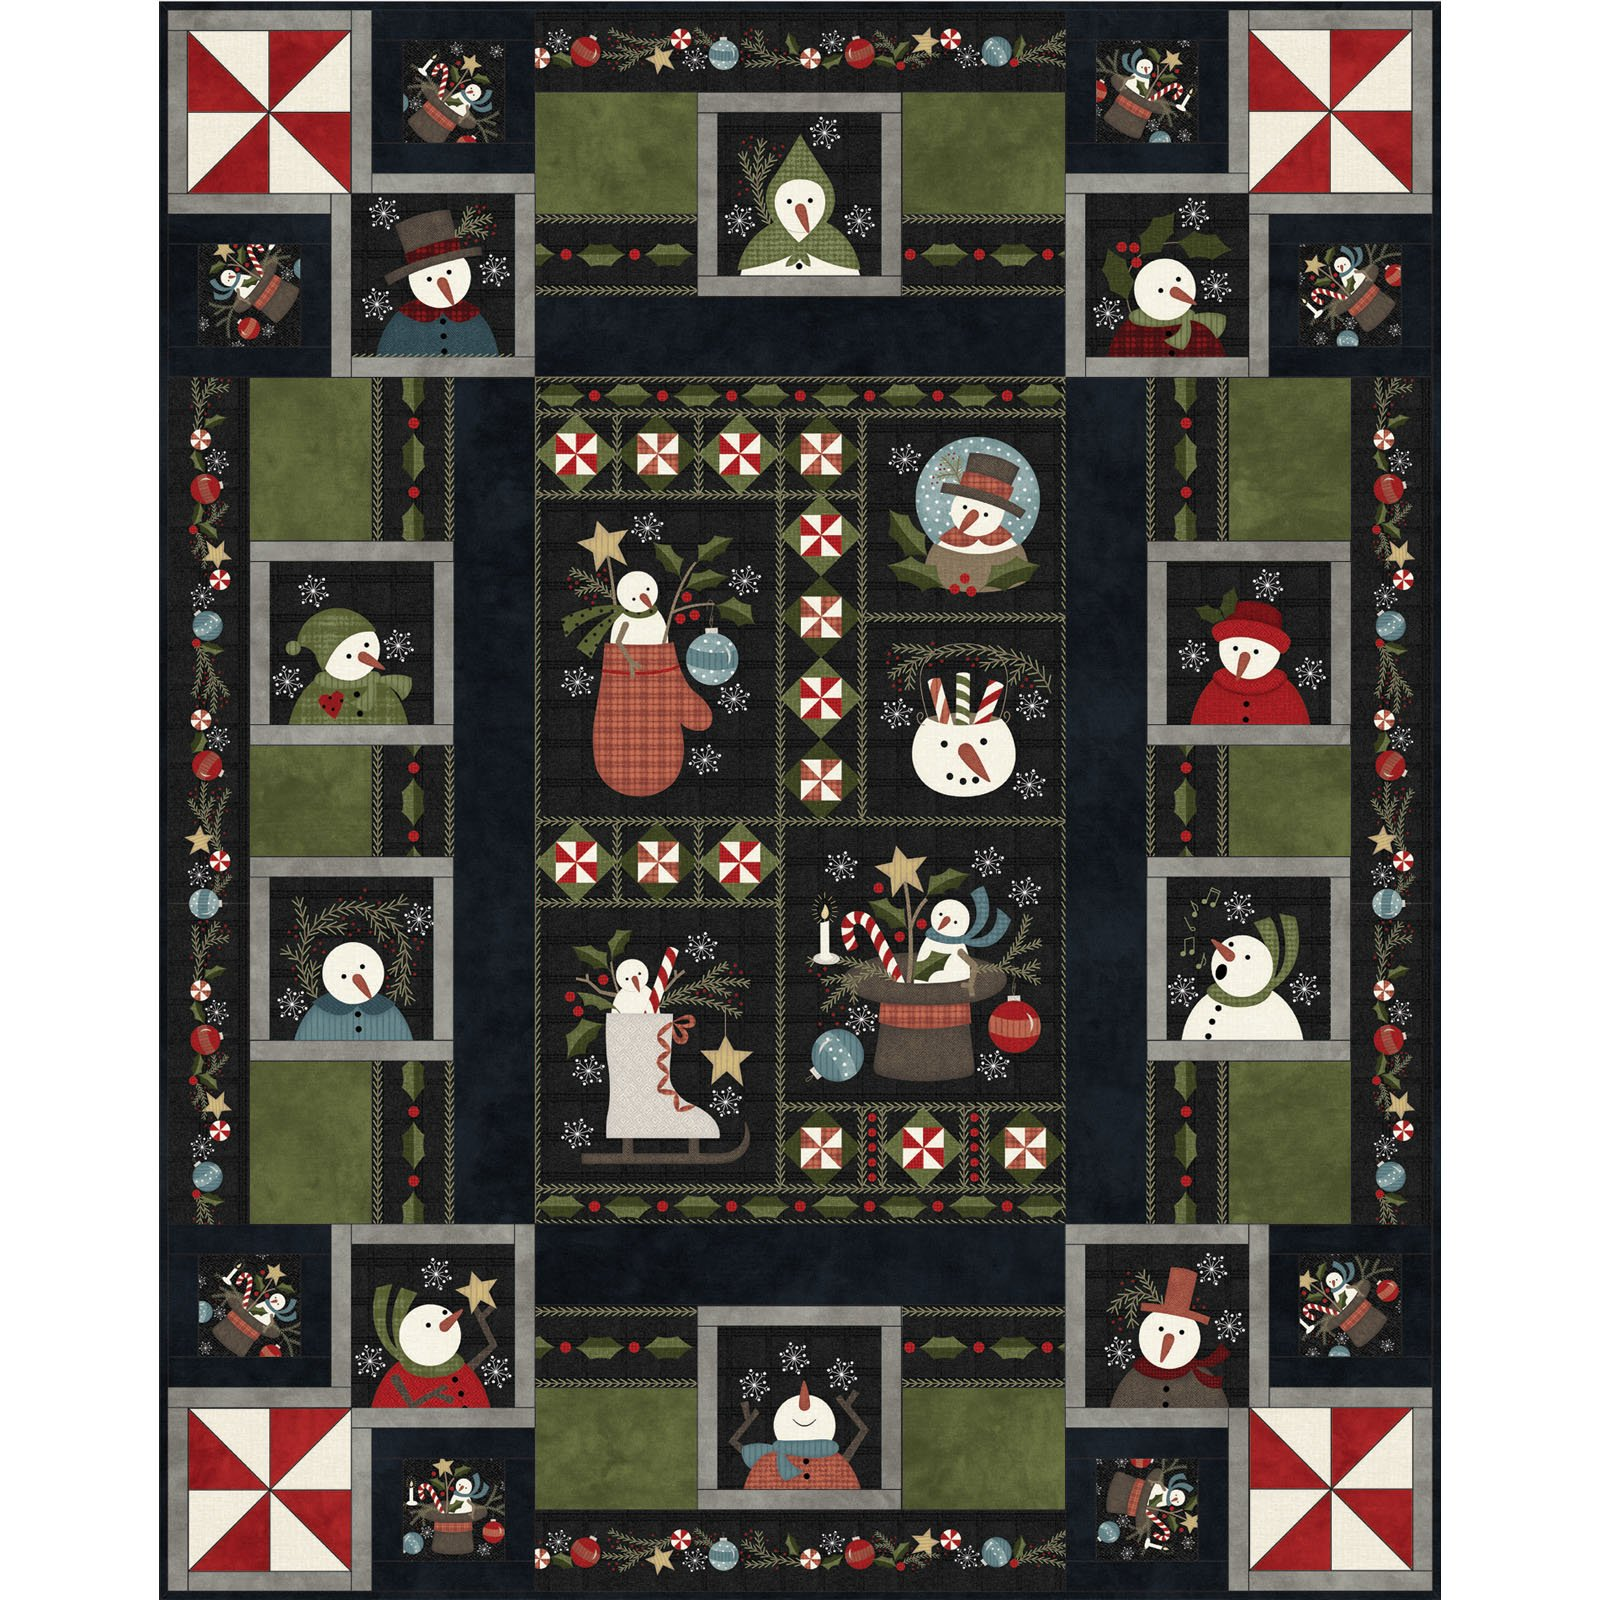 EESC-KITMASSNDF - SNOWDAYS FLANNEL - SNOWDAYS FLANNEL QUILT KIT 63 x 78 - ARRIVING IN JULY 2021